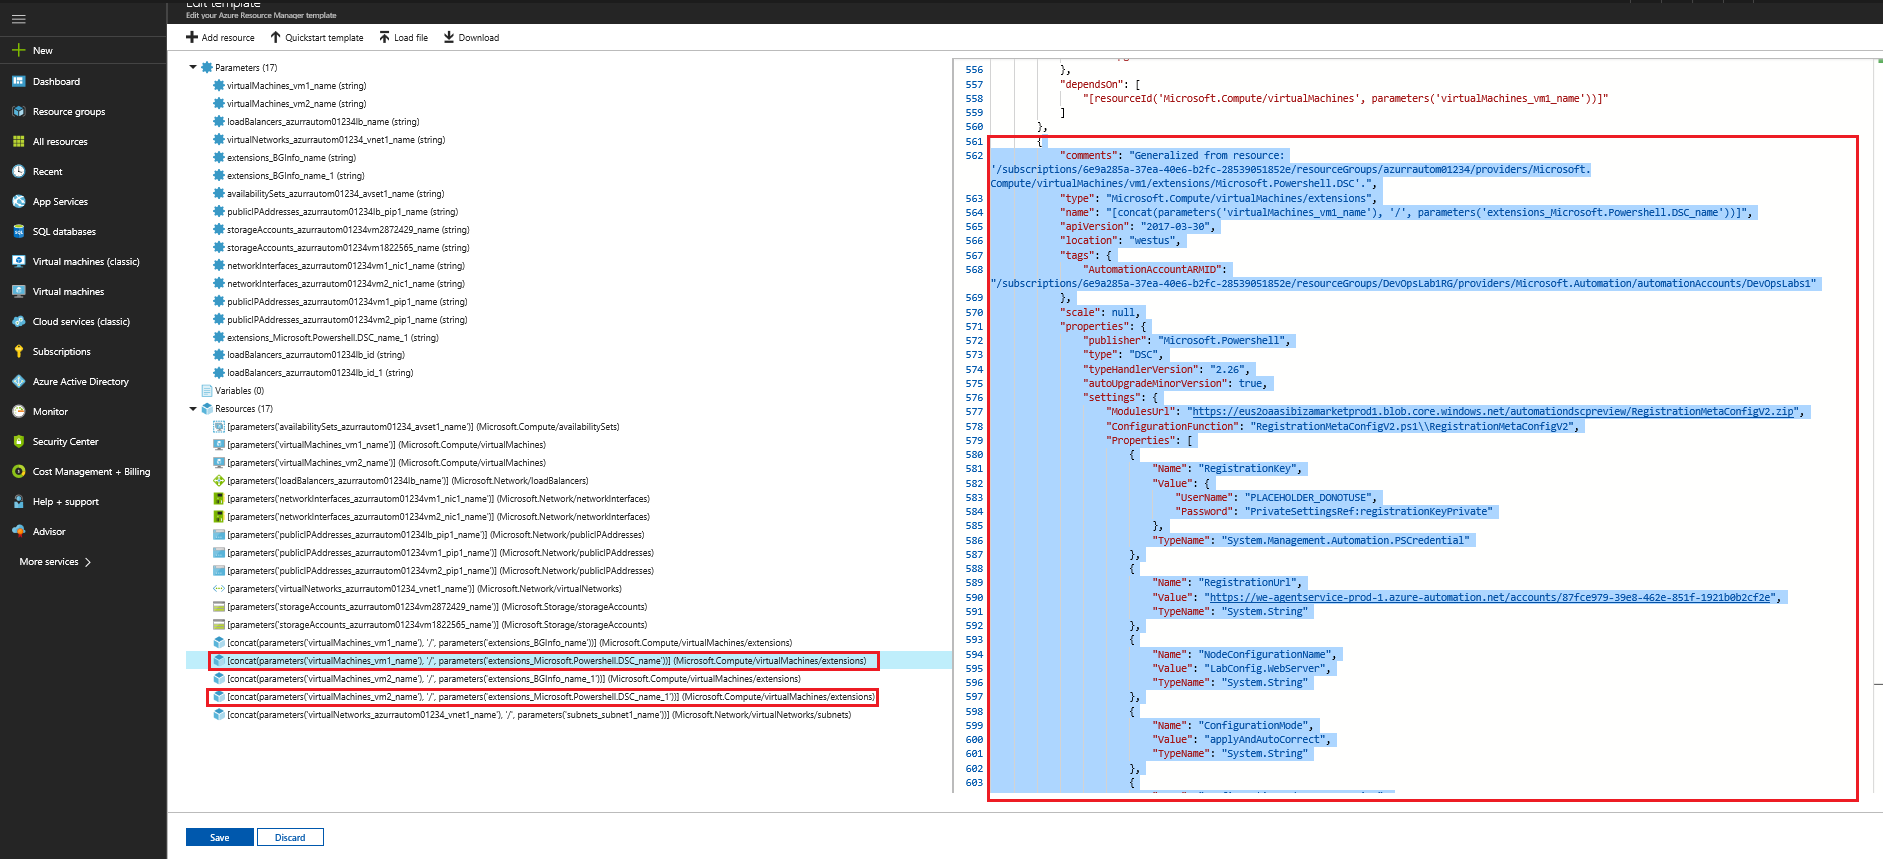 PartsUnlimited : Deploy and Configure Azure Resources with